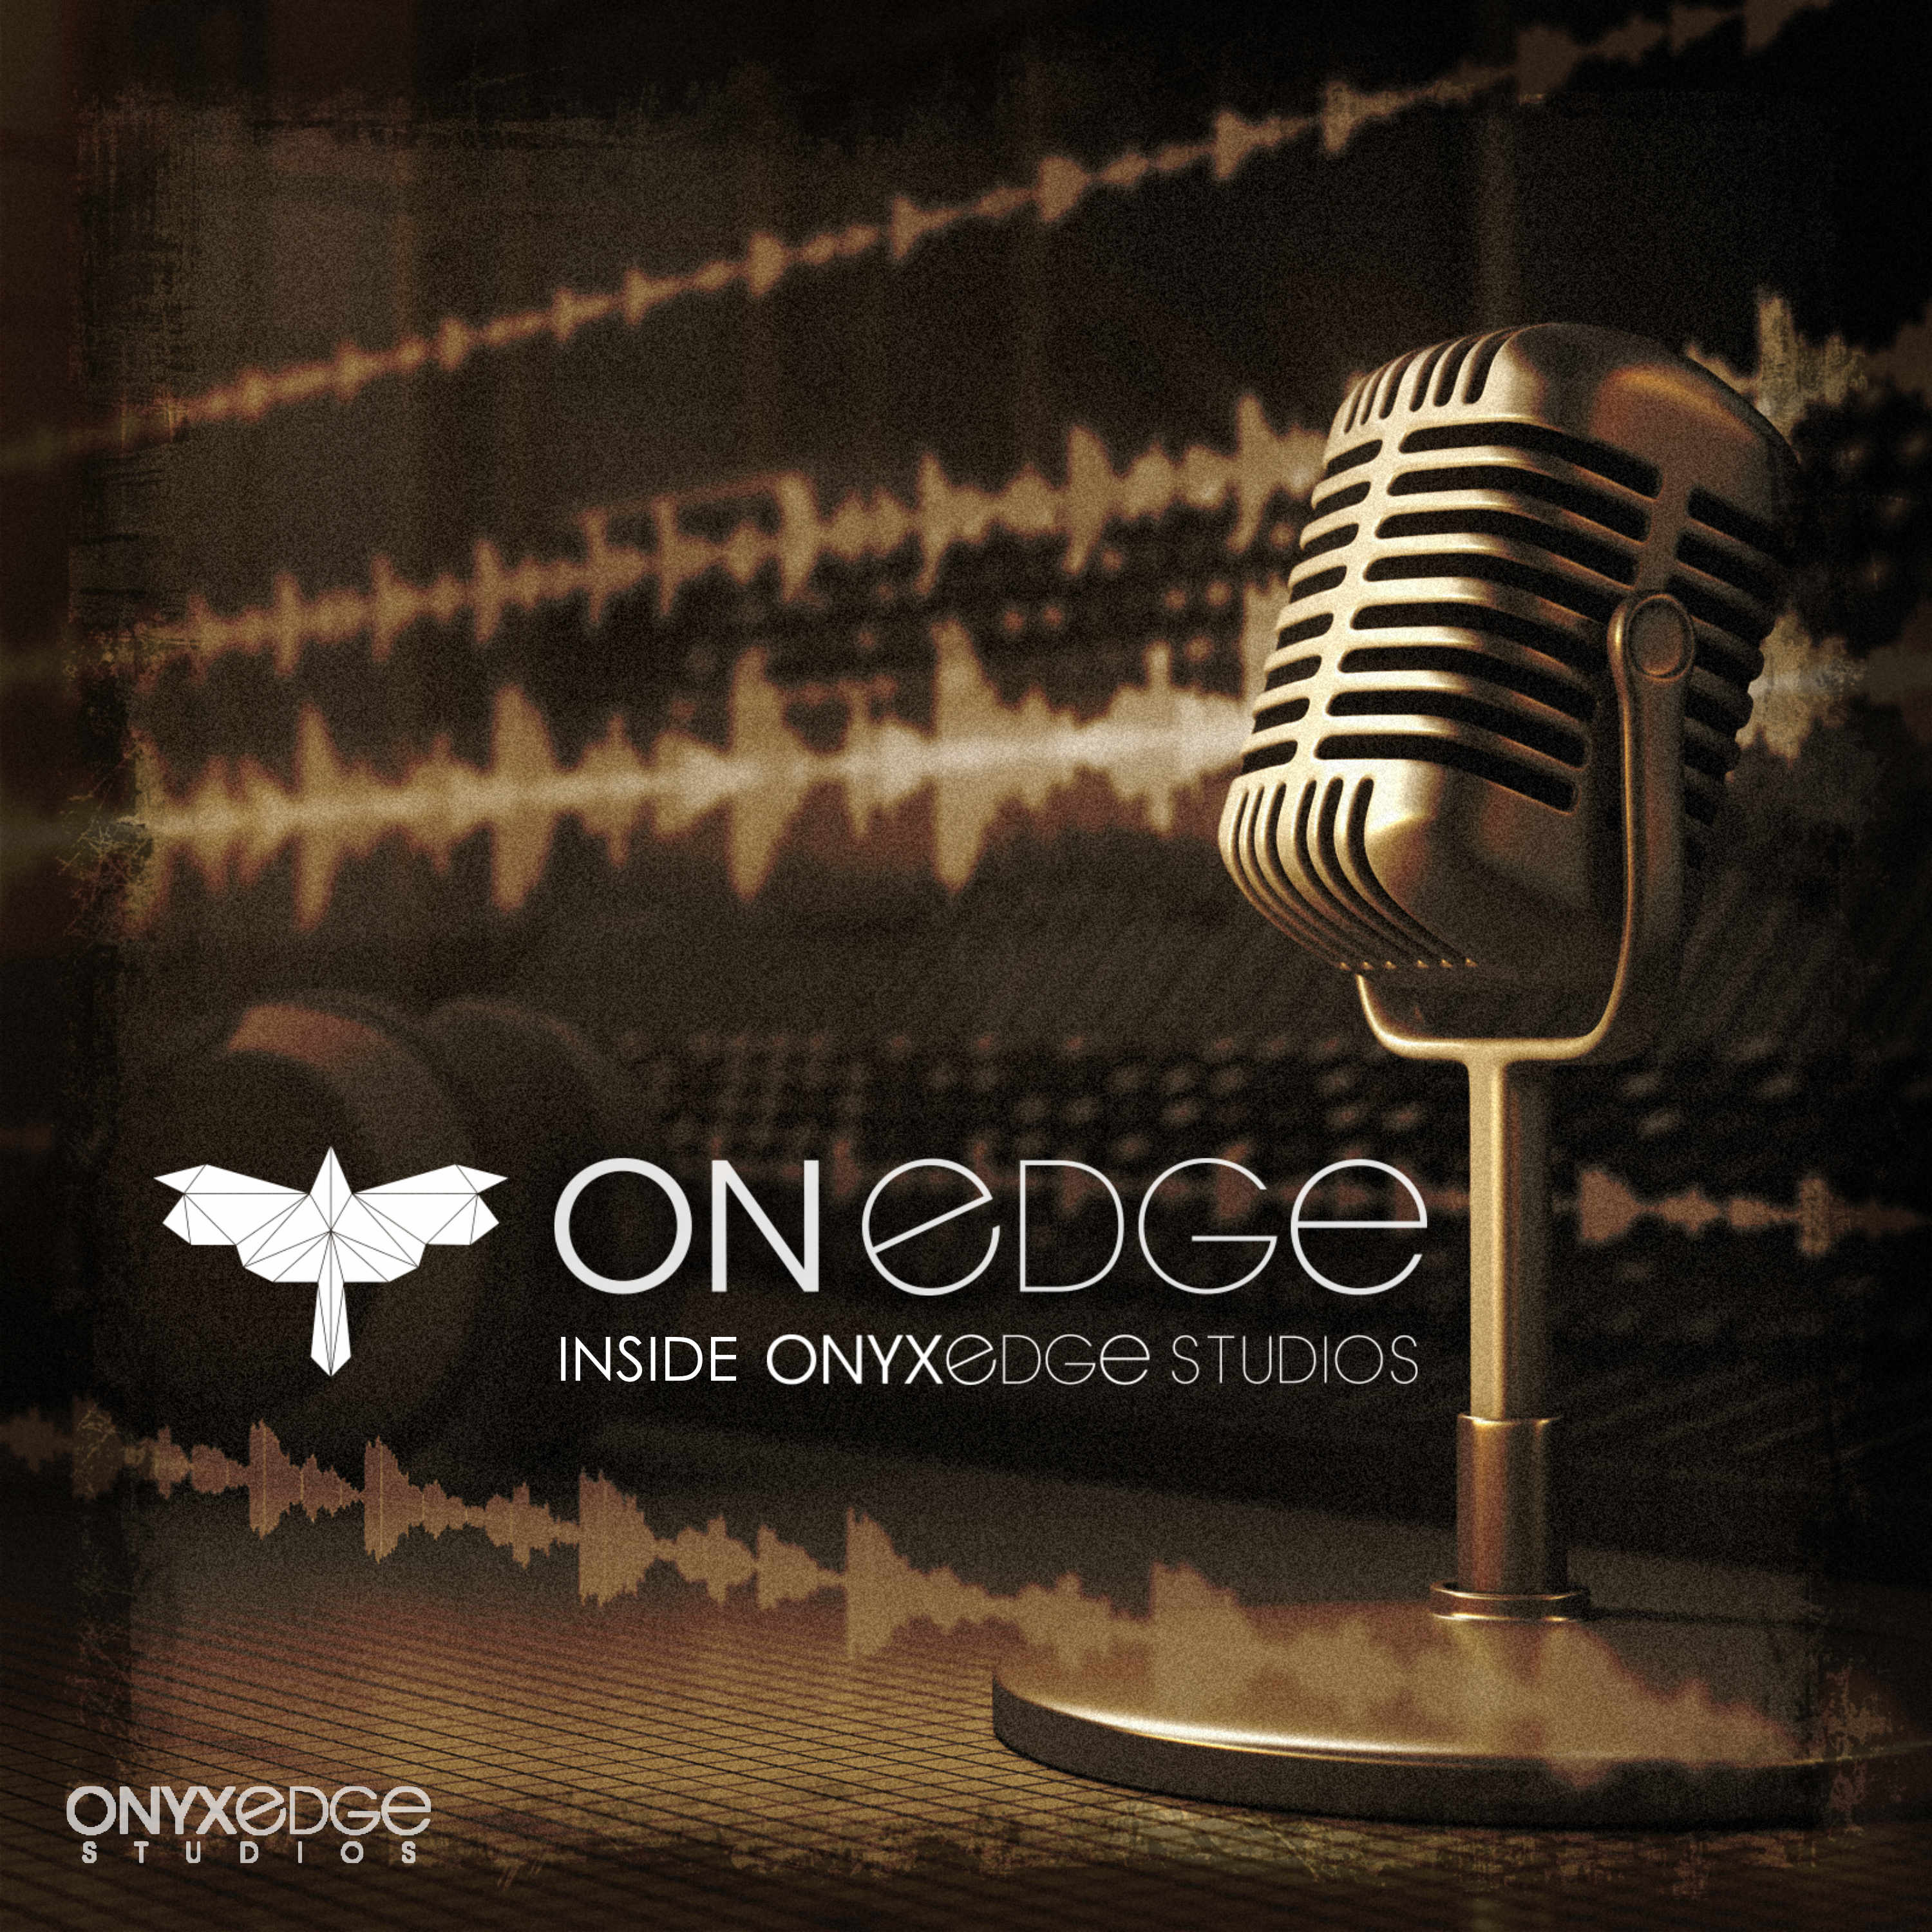 On Edge: Inside Onyx Edge Studios